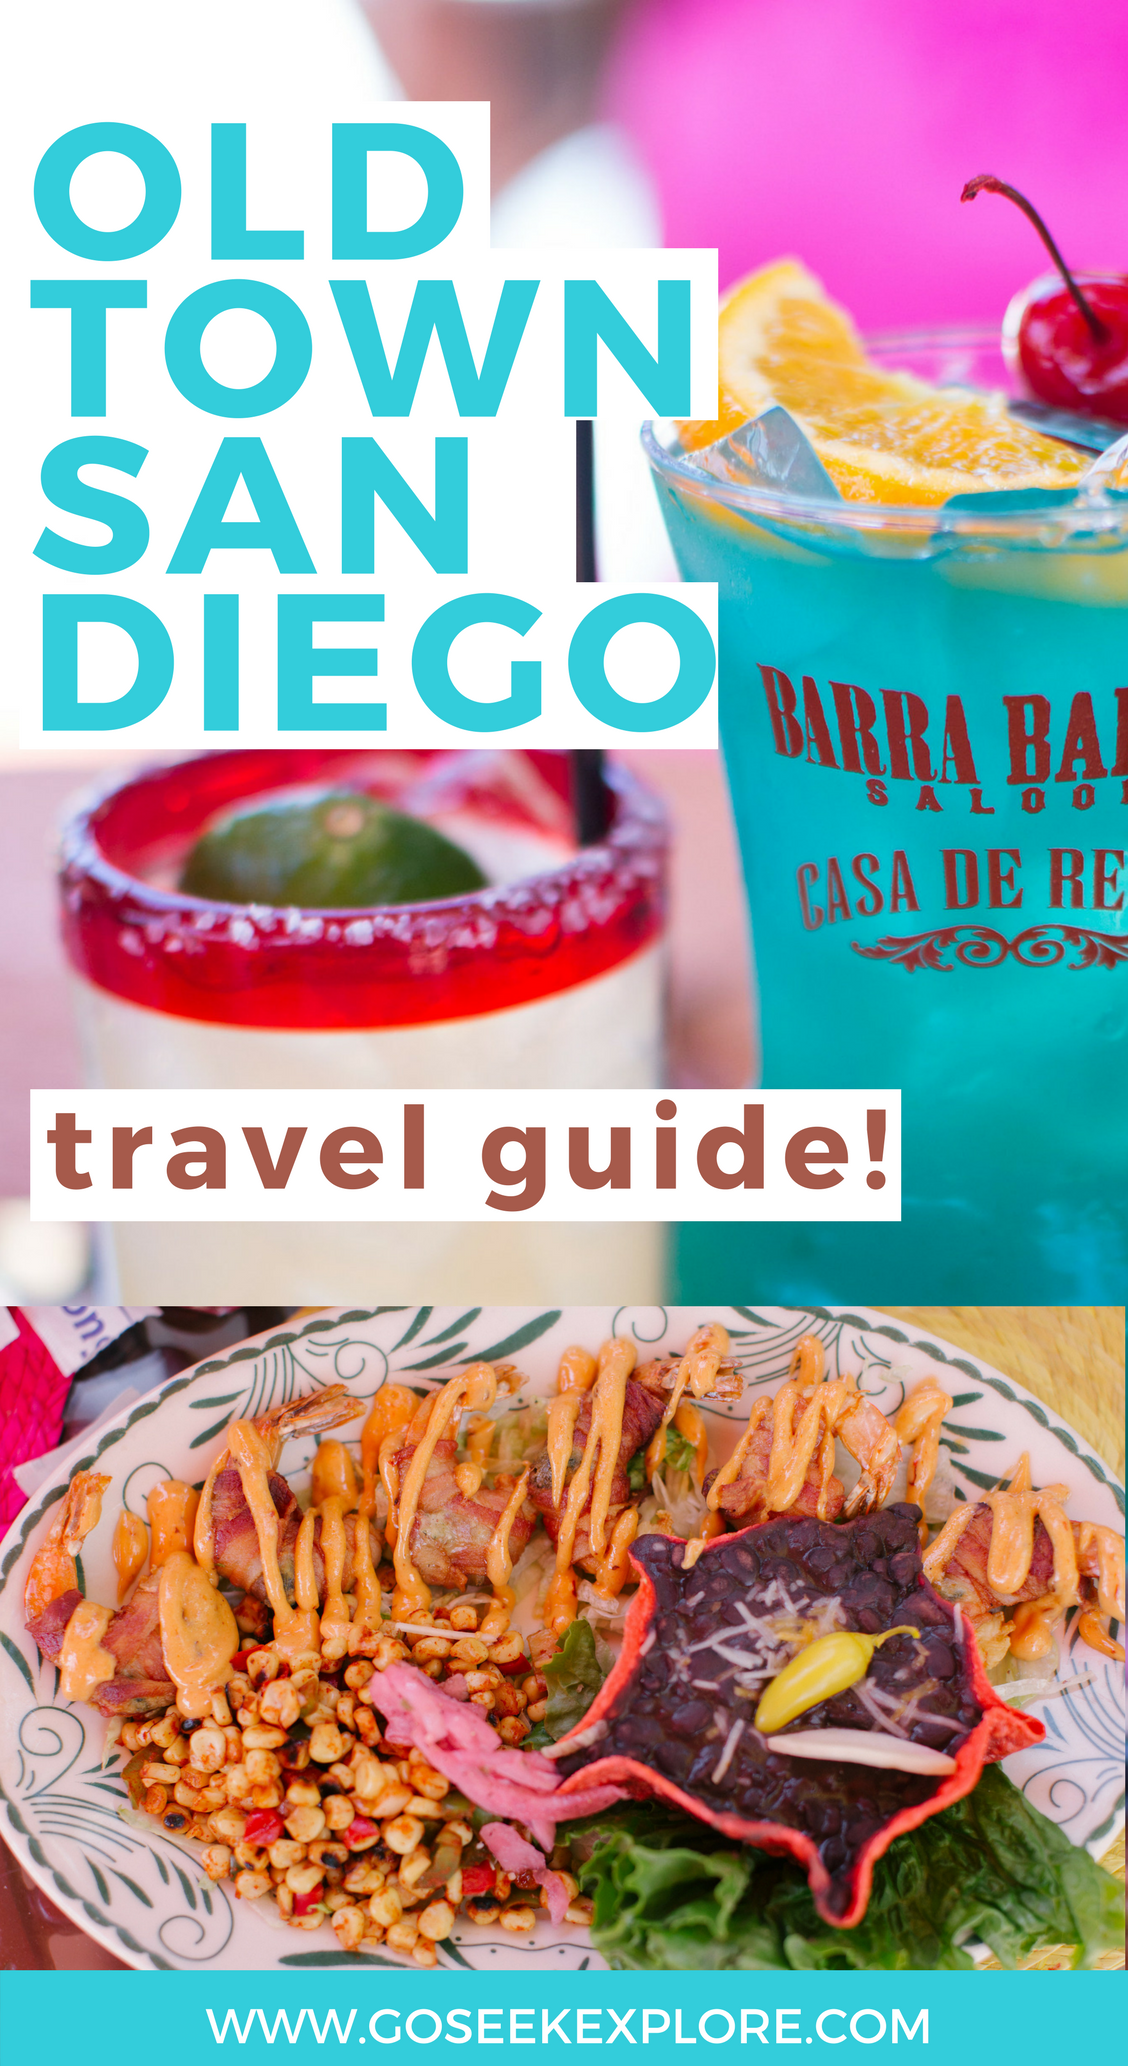 """Old Town San Diego Travel Guide! Awesome and fun places to check out when you visit the Old Town neighborhood in San Diego, California. Old Town is the """"historic heart"""" of San Diego and has a Mexican flair! You'll love checking out these places & eating delicious food when you visit Old Town!"""